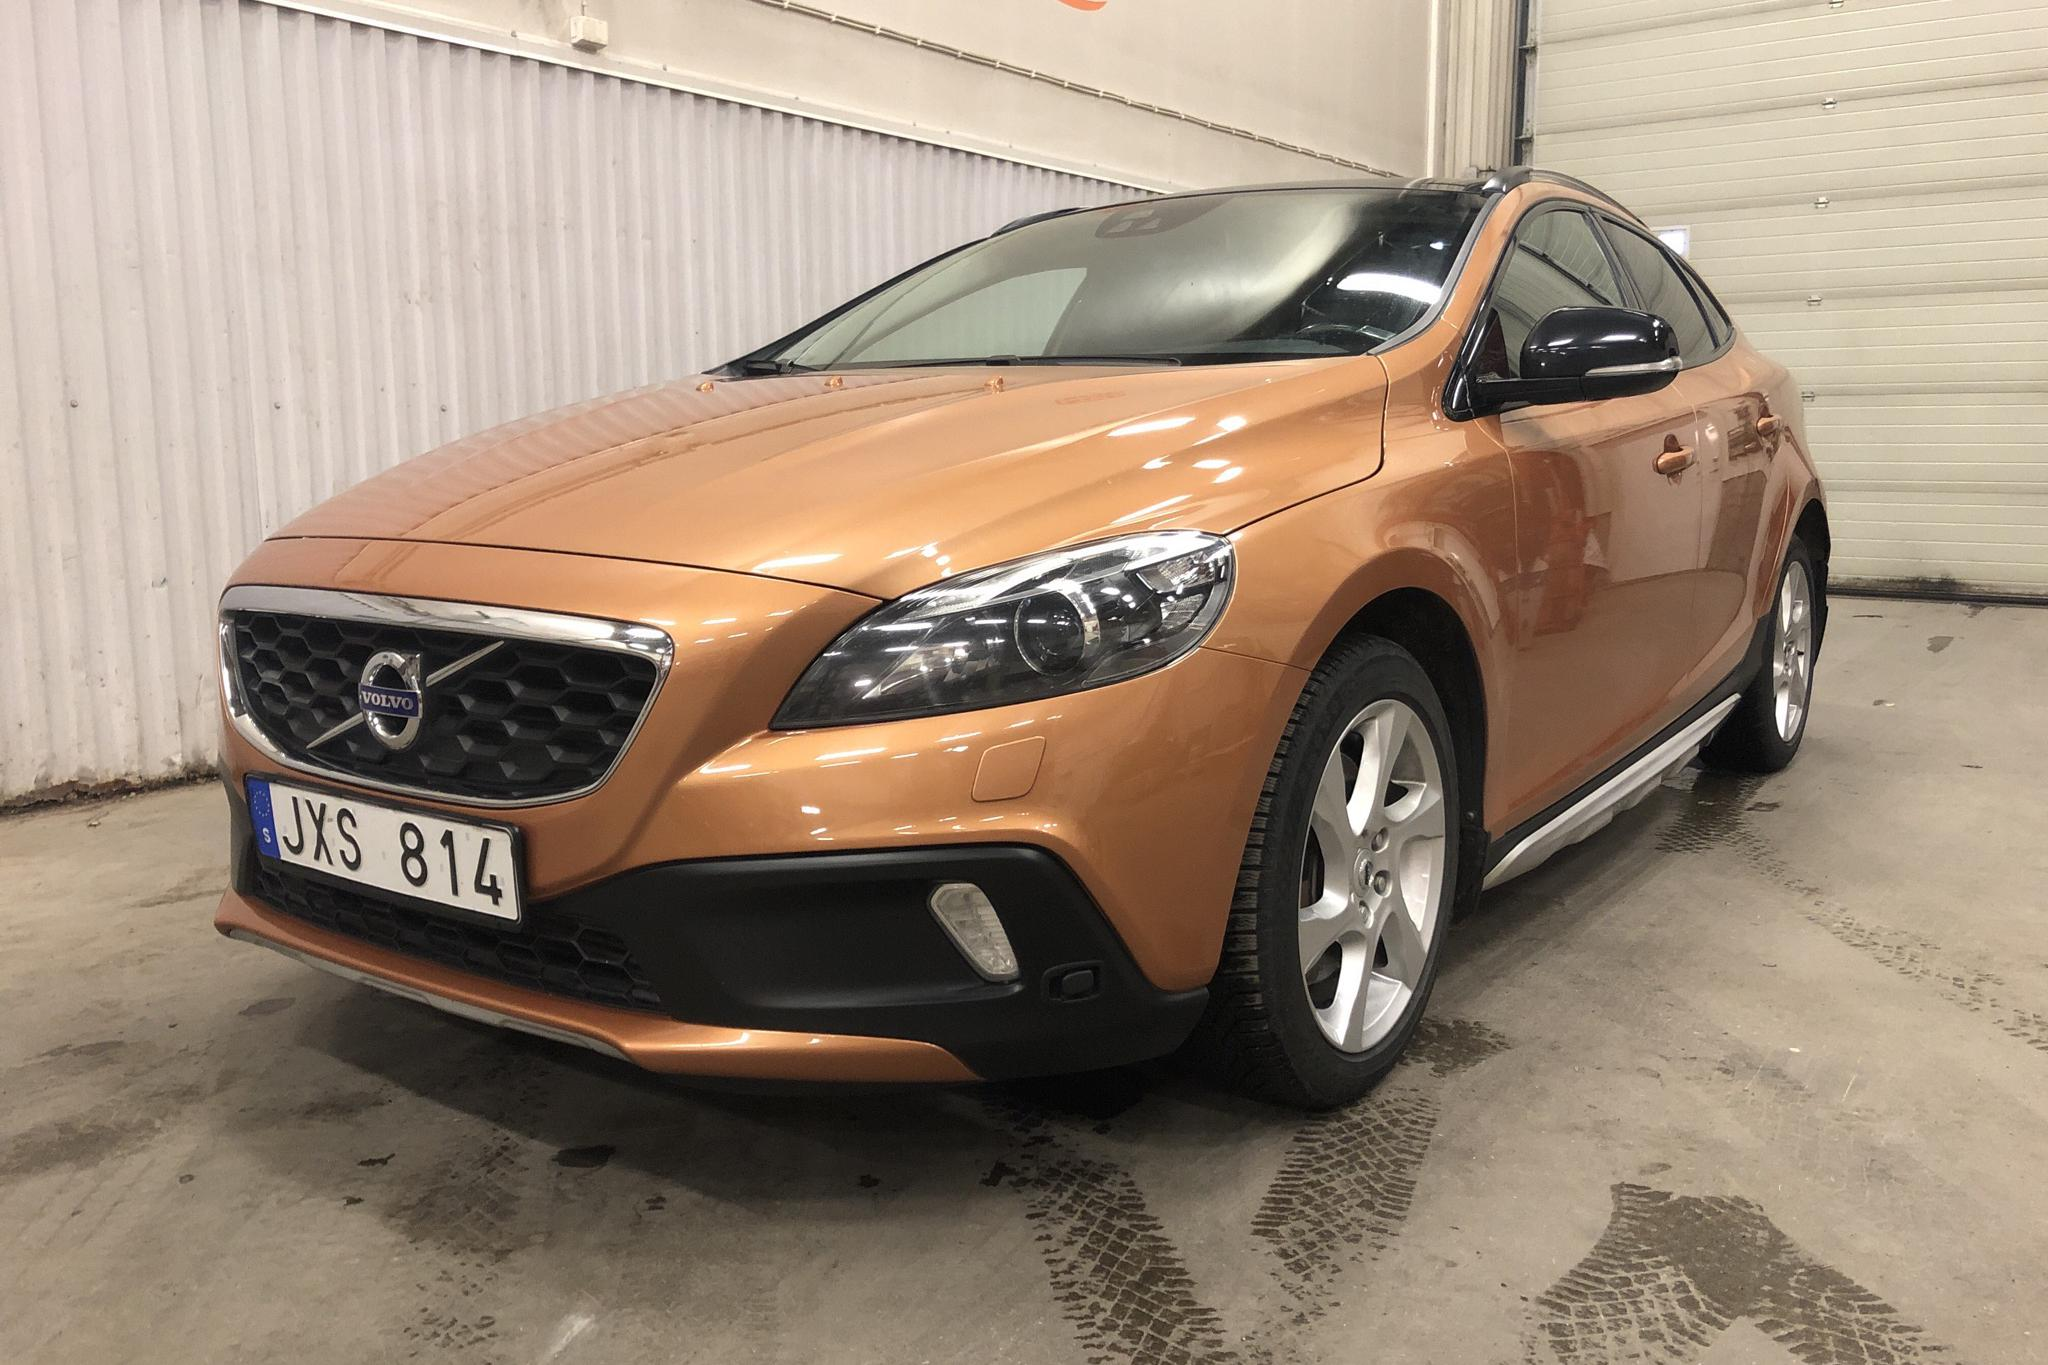 Volvo V40 Cross Country D4 (177hk) - 174 670 km - Automatic - brown - 2013